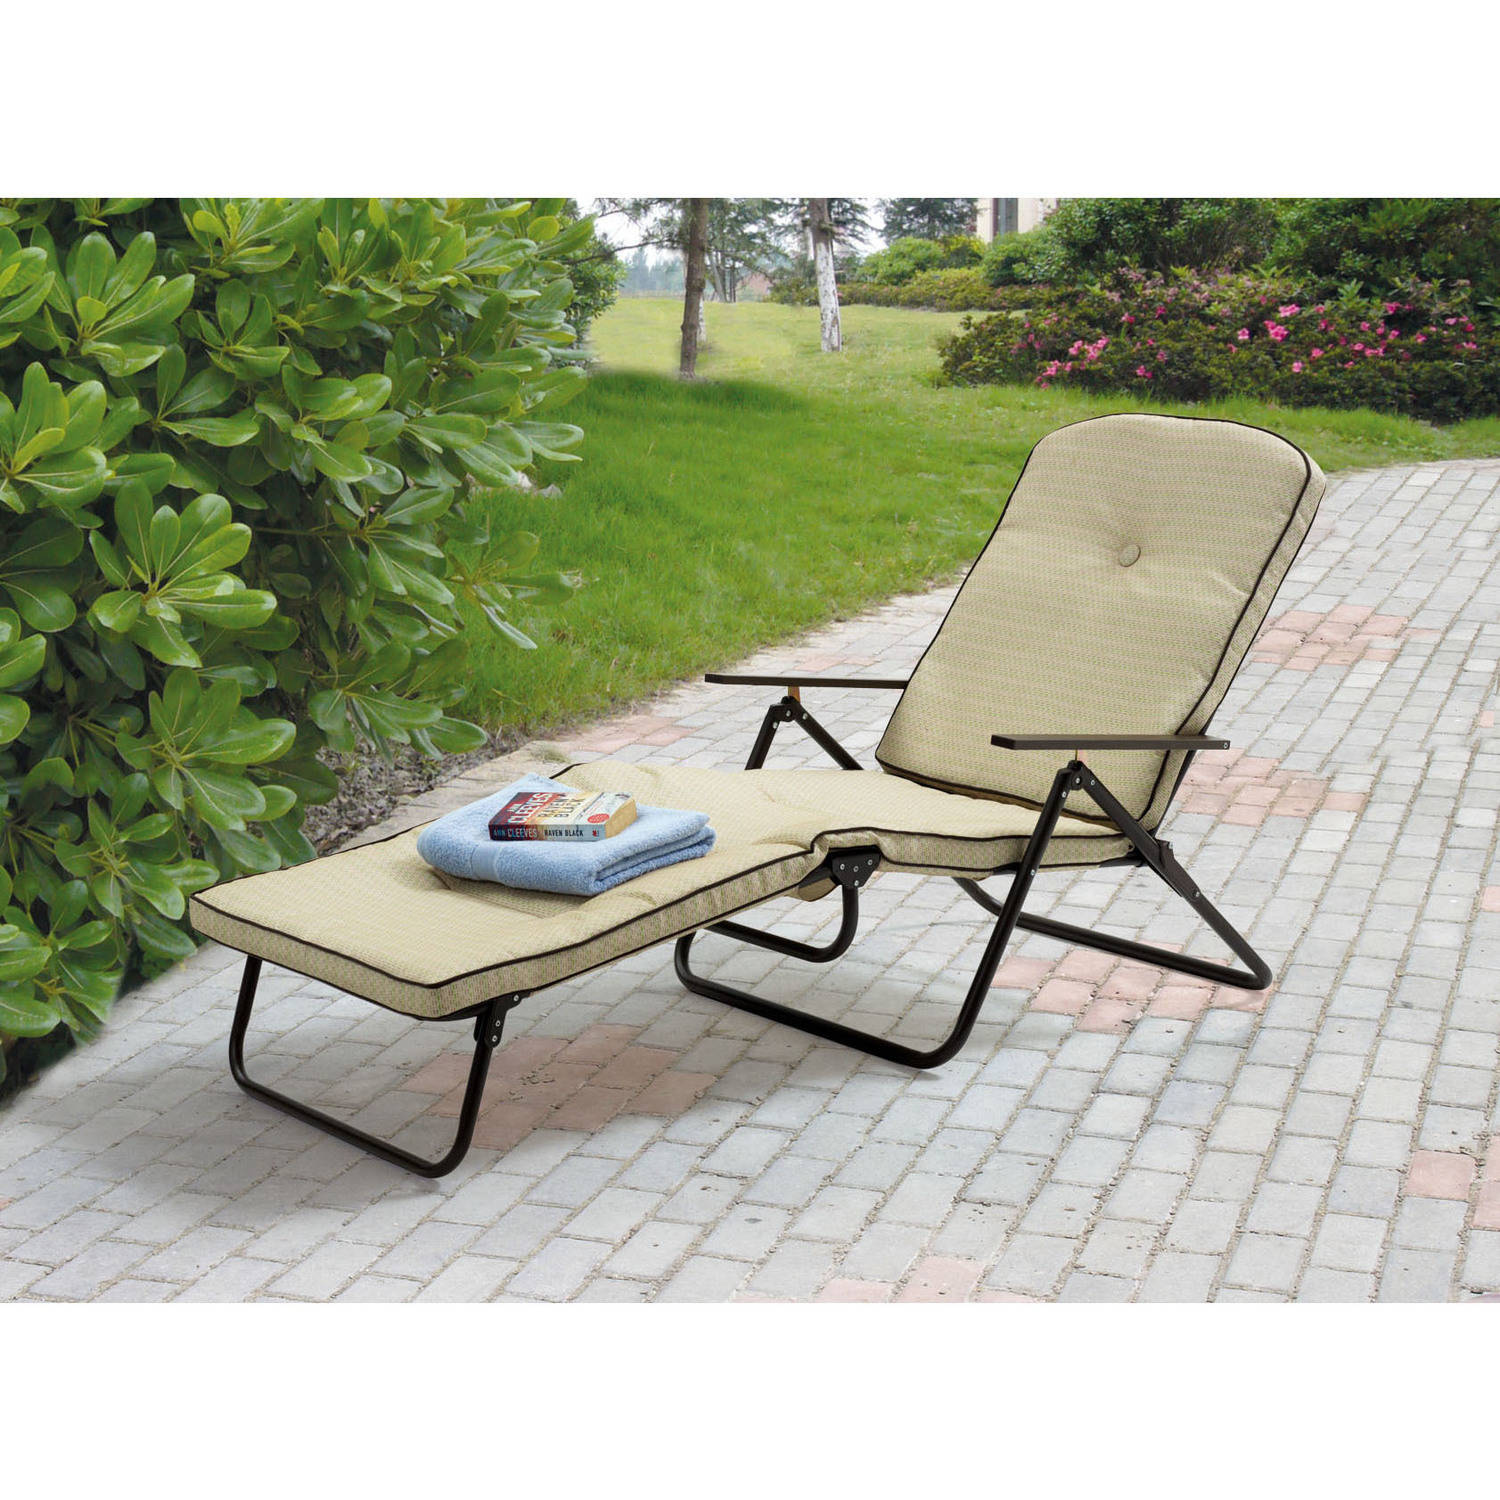 Folding Chaise Lounge Chairs Outdoor Details About Mainstays Sand Dune Outdoor Padded Folding Chaise Lounge Tan